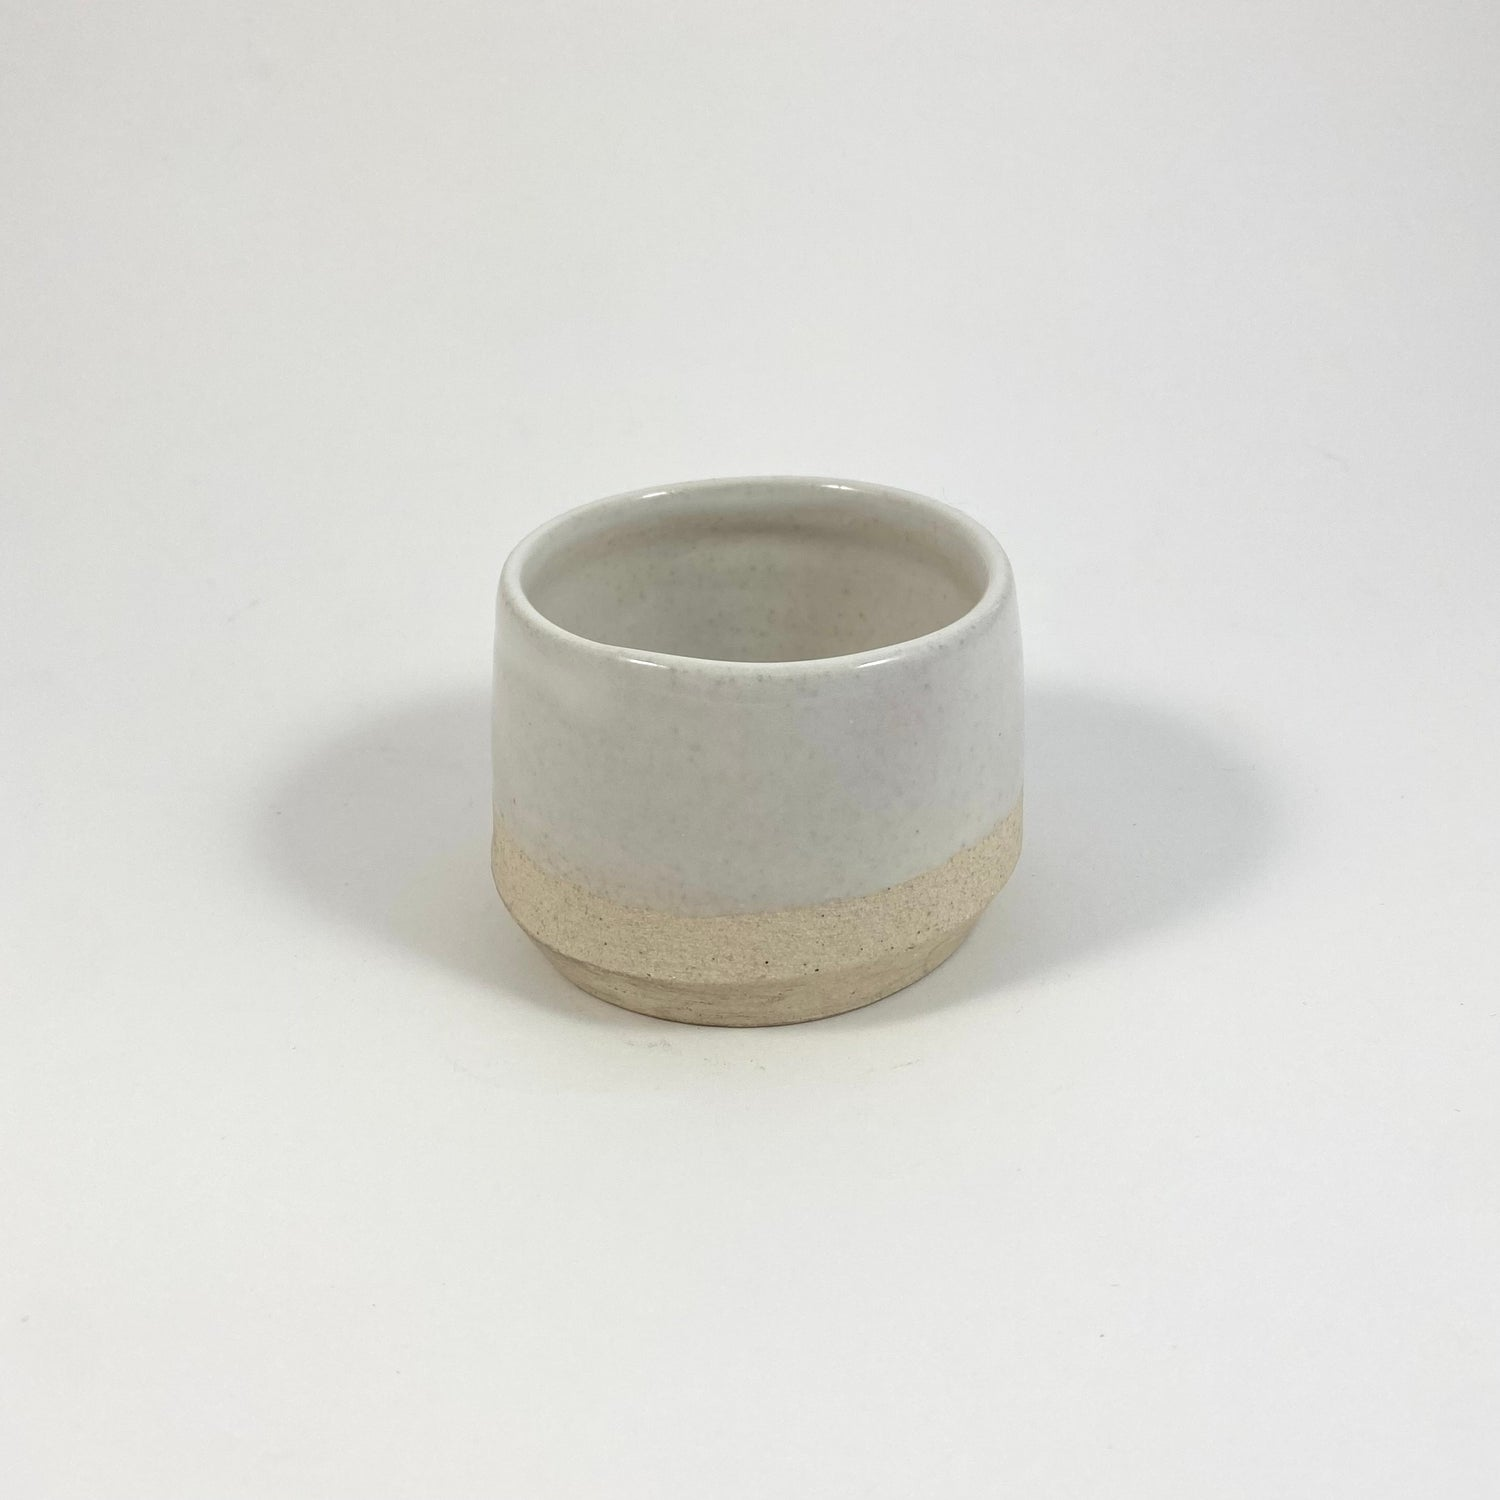 Image of Tiny White Ceramic Cup